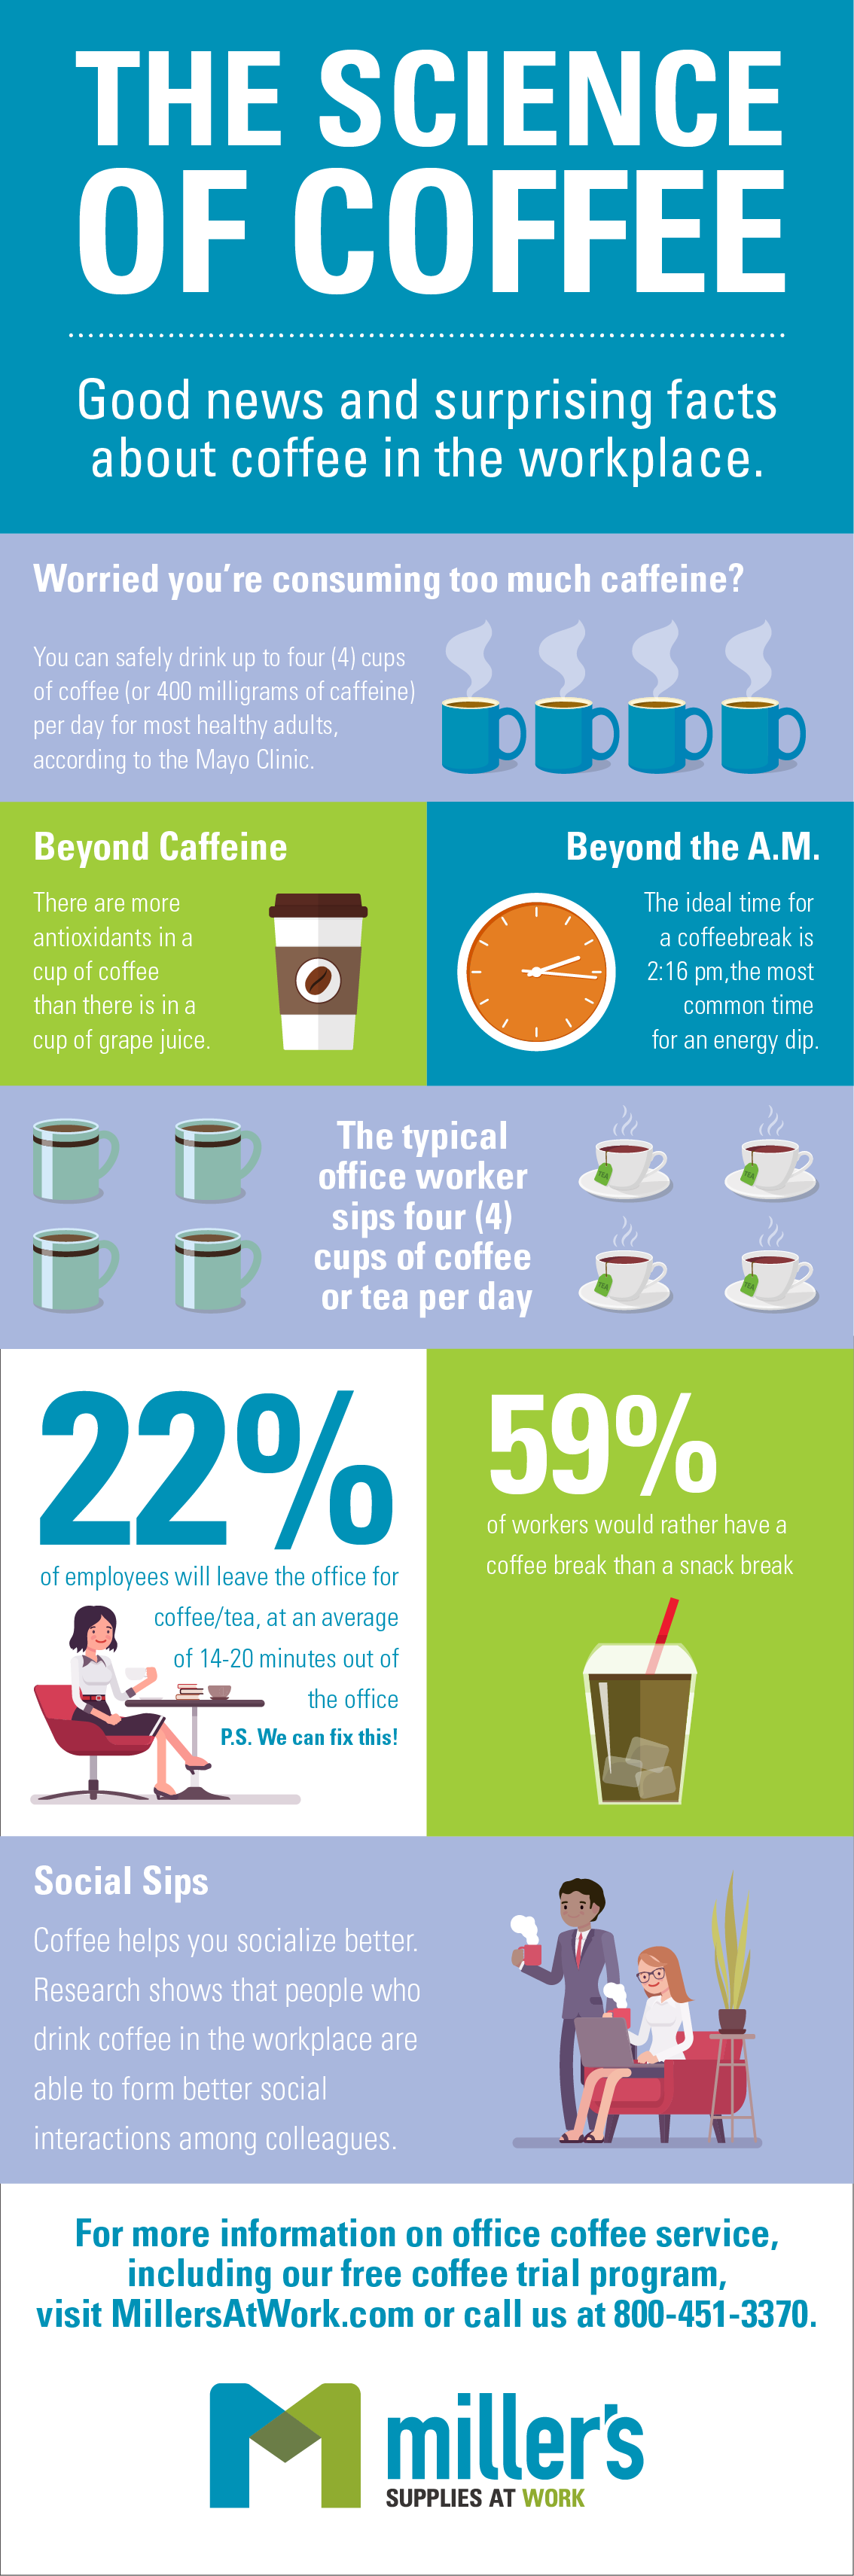 Millers_CoffeeInfographic_200127